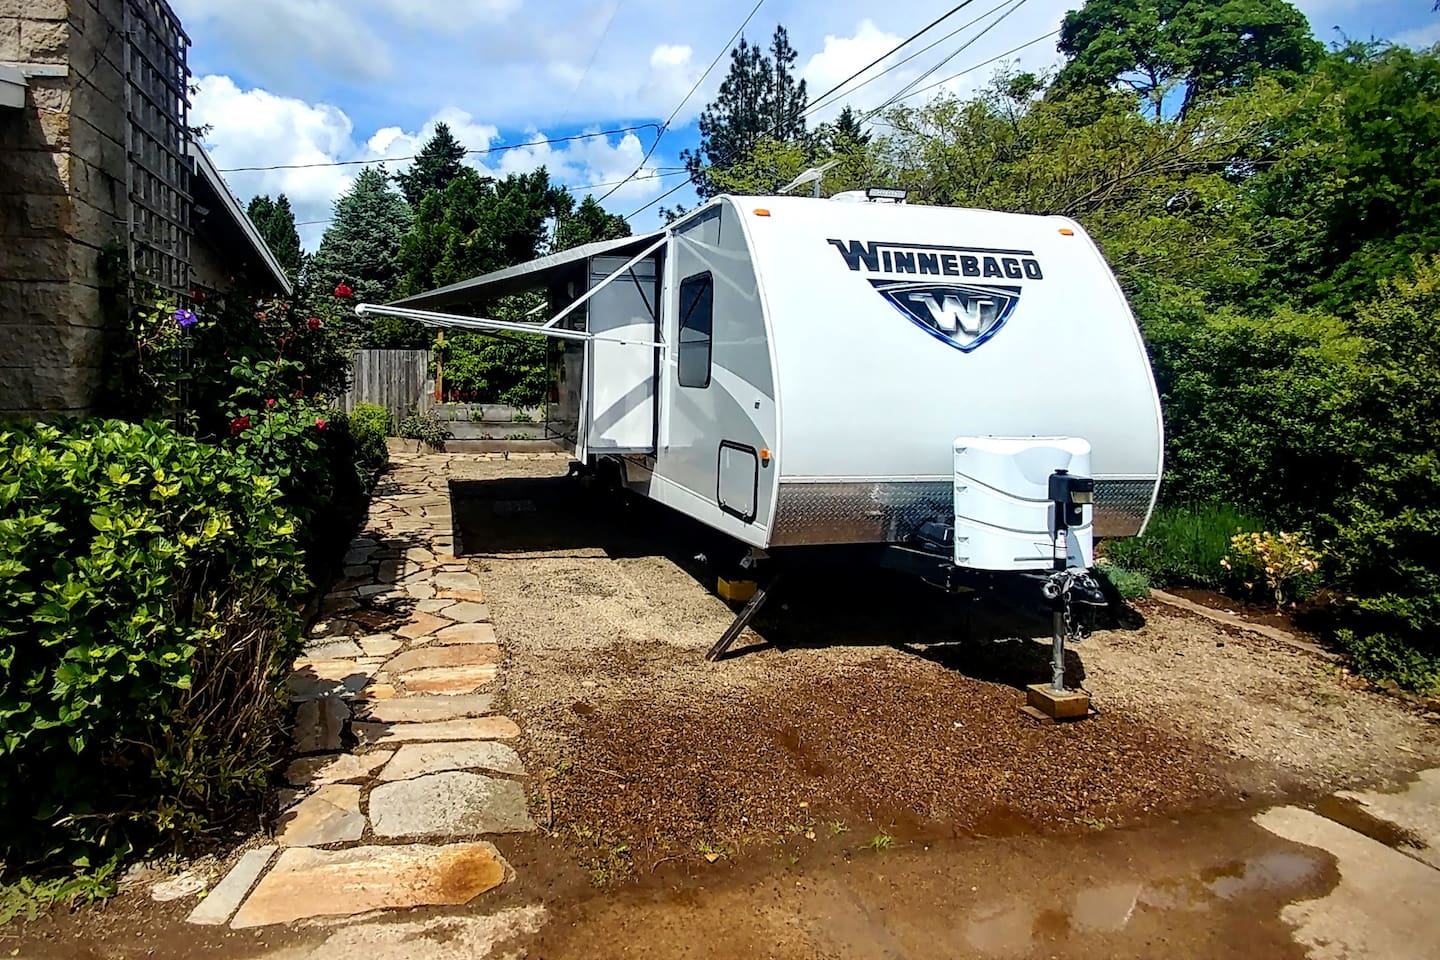 Enjoy glamping in our private urban campground, surrounded by beautiful landscaping. A perfect place to relax during your time in Eugene.